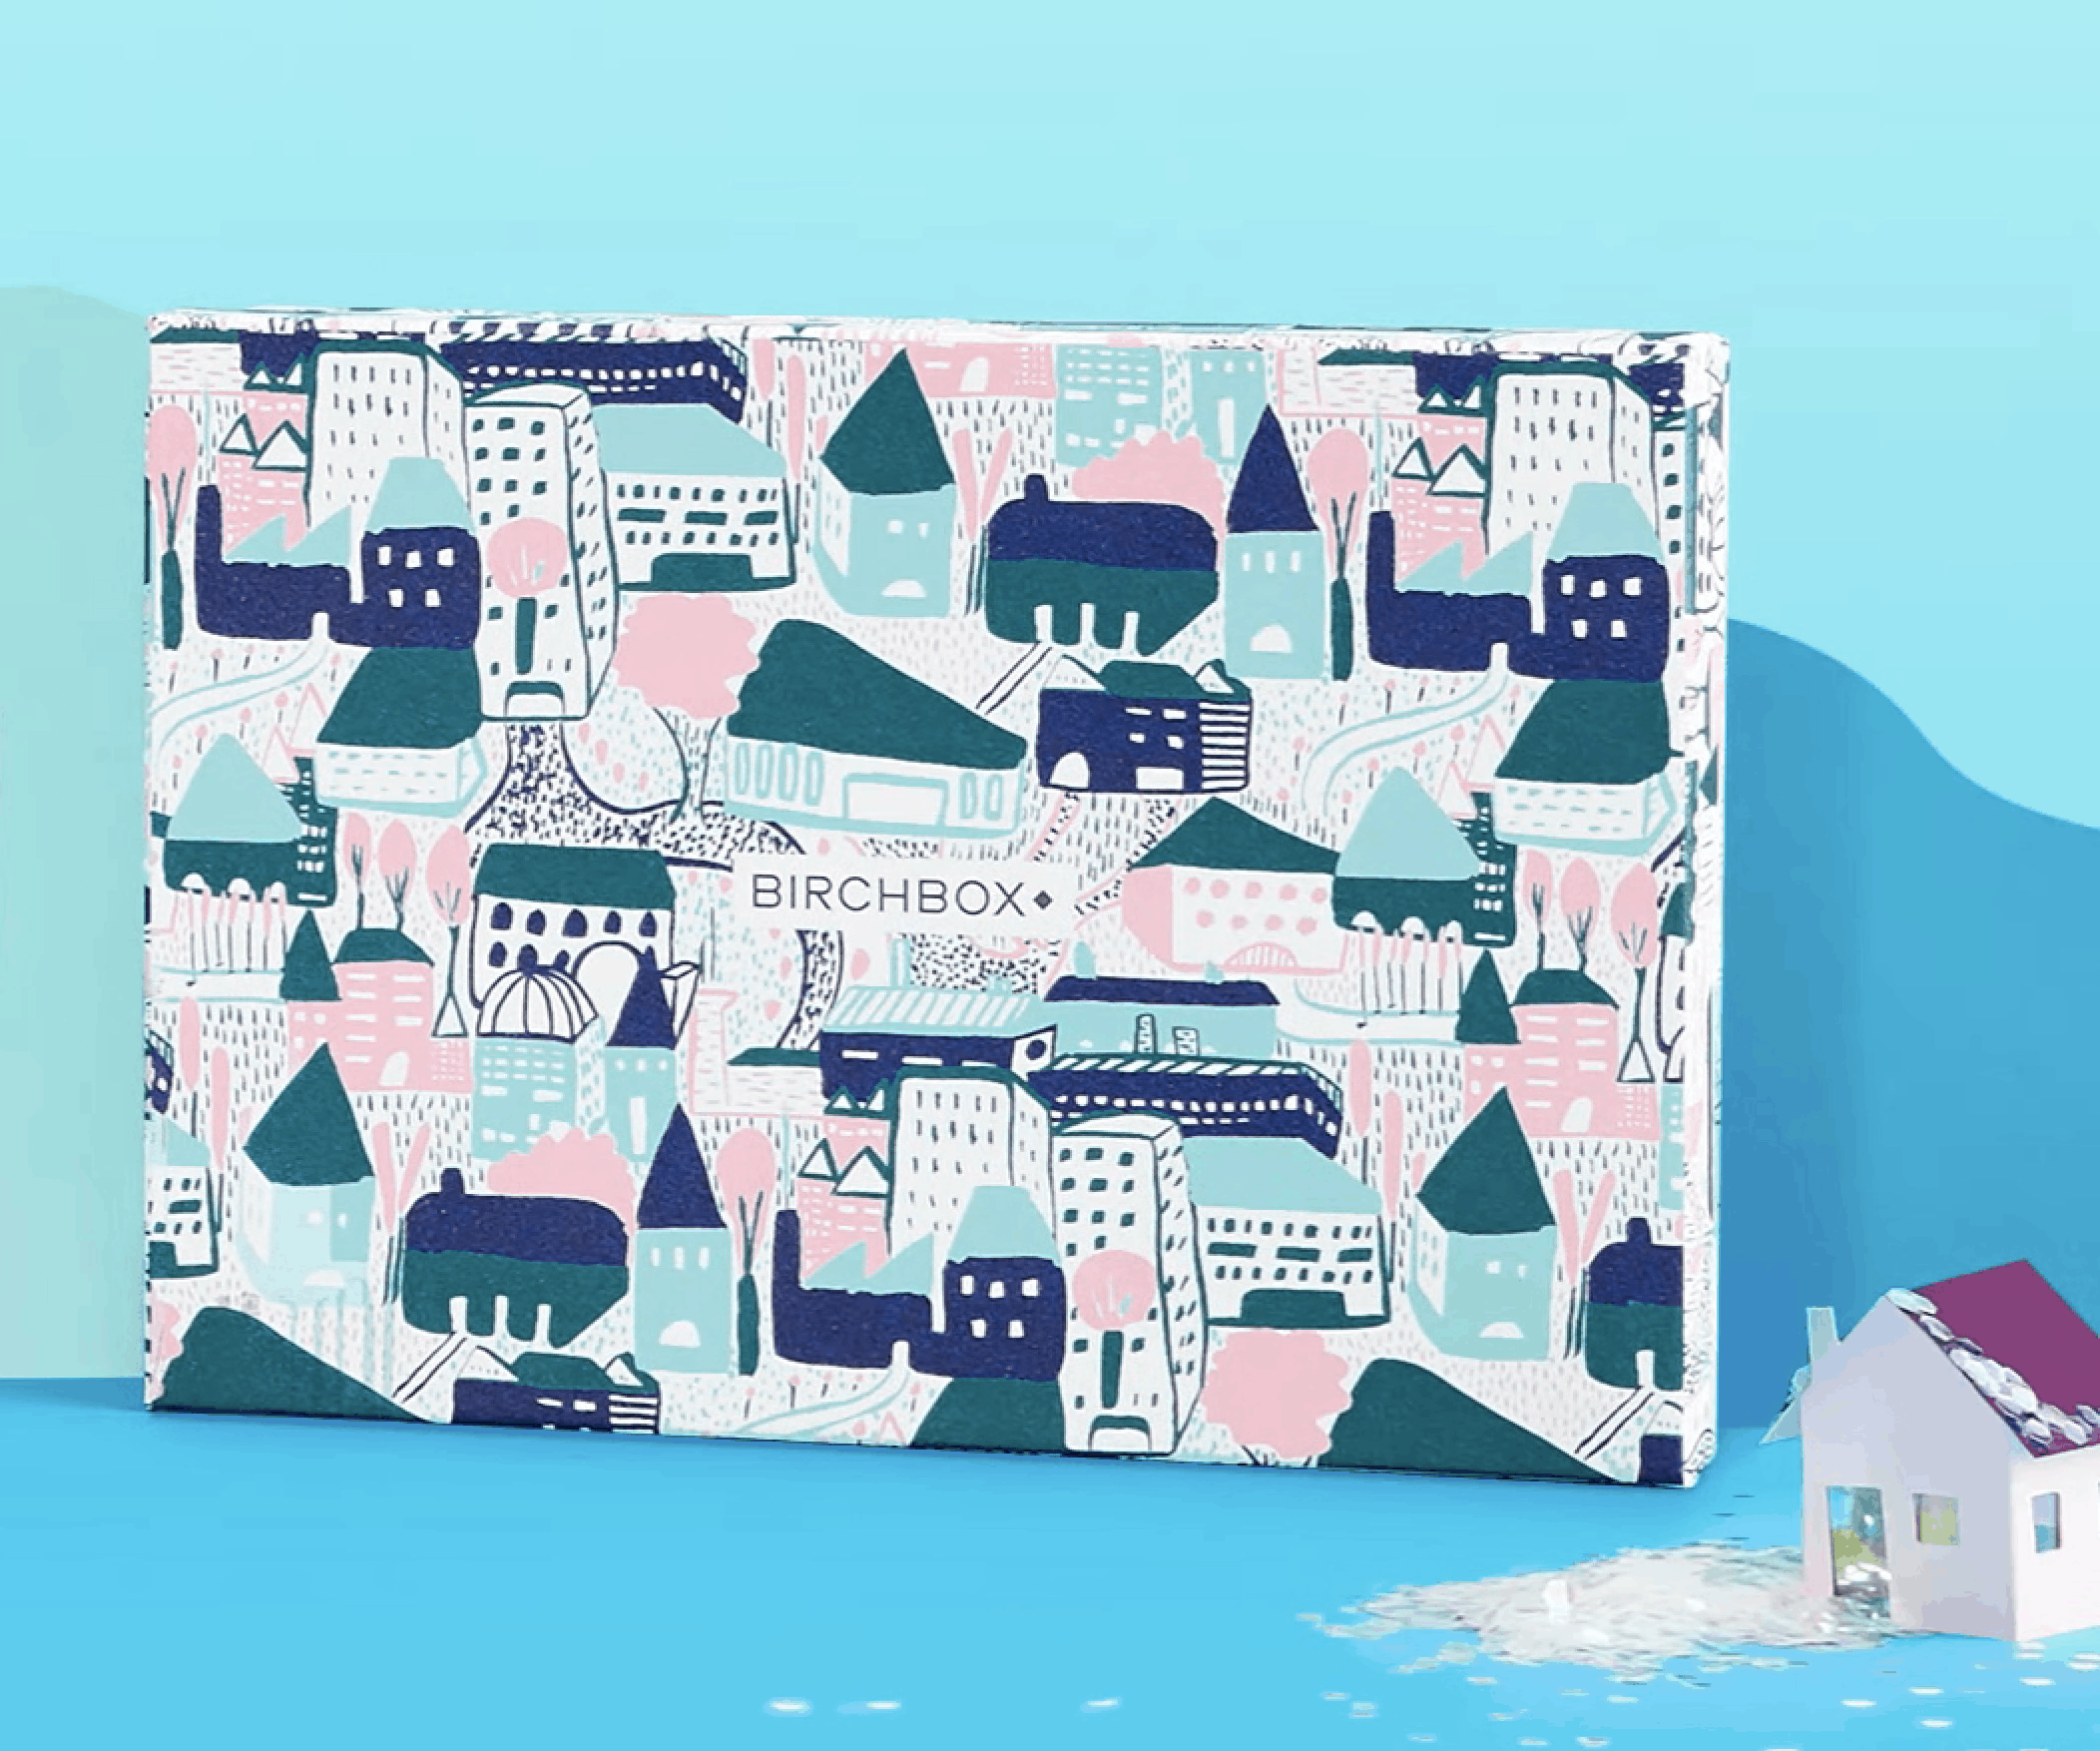 Birchbox November 2019 Sneak Peeks Up!